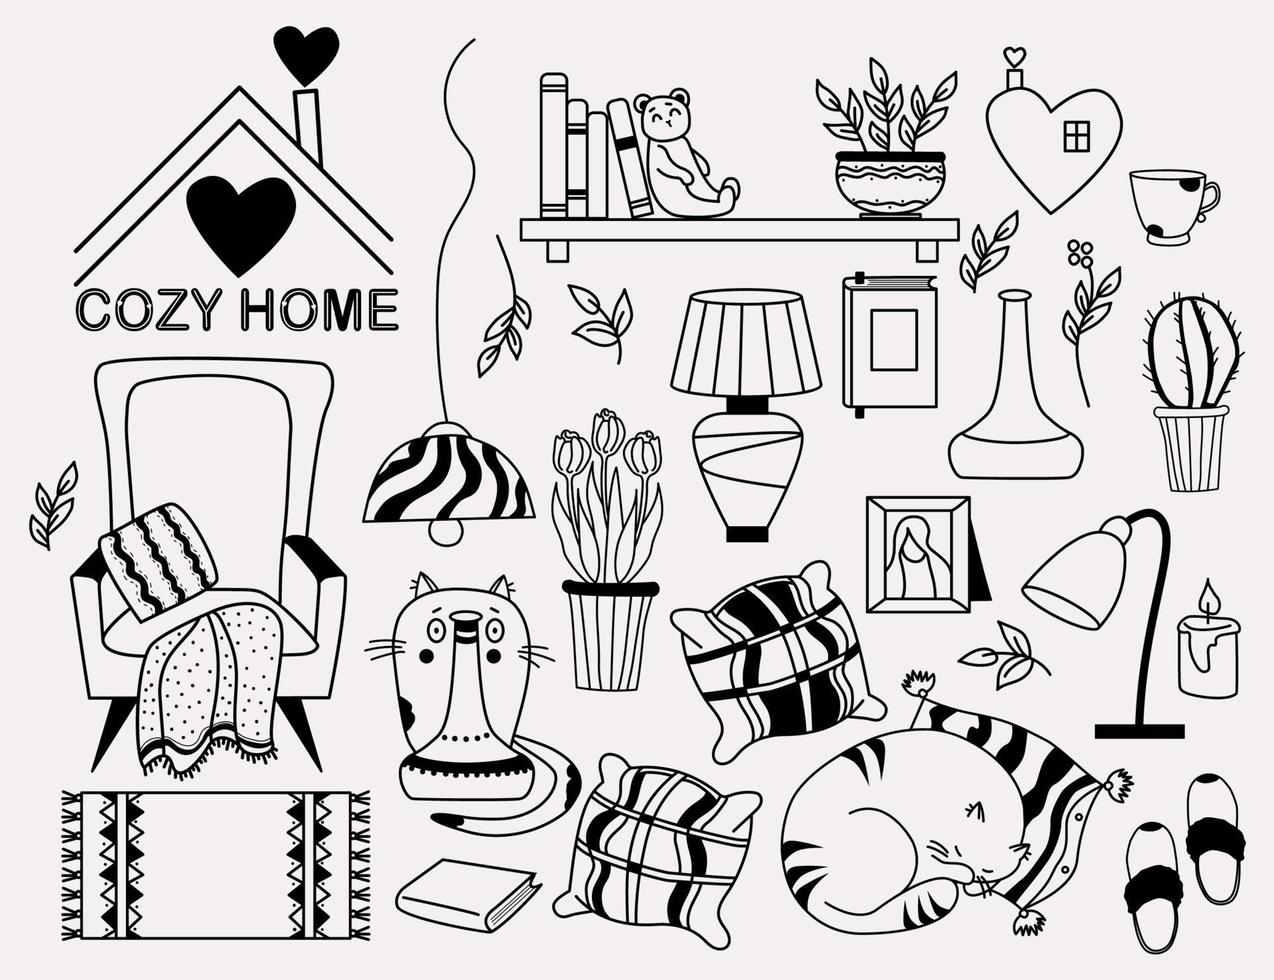 Cozy home. set of doodles - a cat looking out from behind a vase, a cat sleeping on a pillow, a bookshelf and a teddy bear, an armchair with a blanket, flowerpots, lamp and cookies. Vector, outline vector